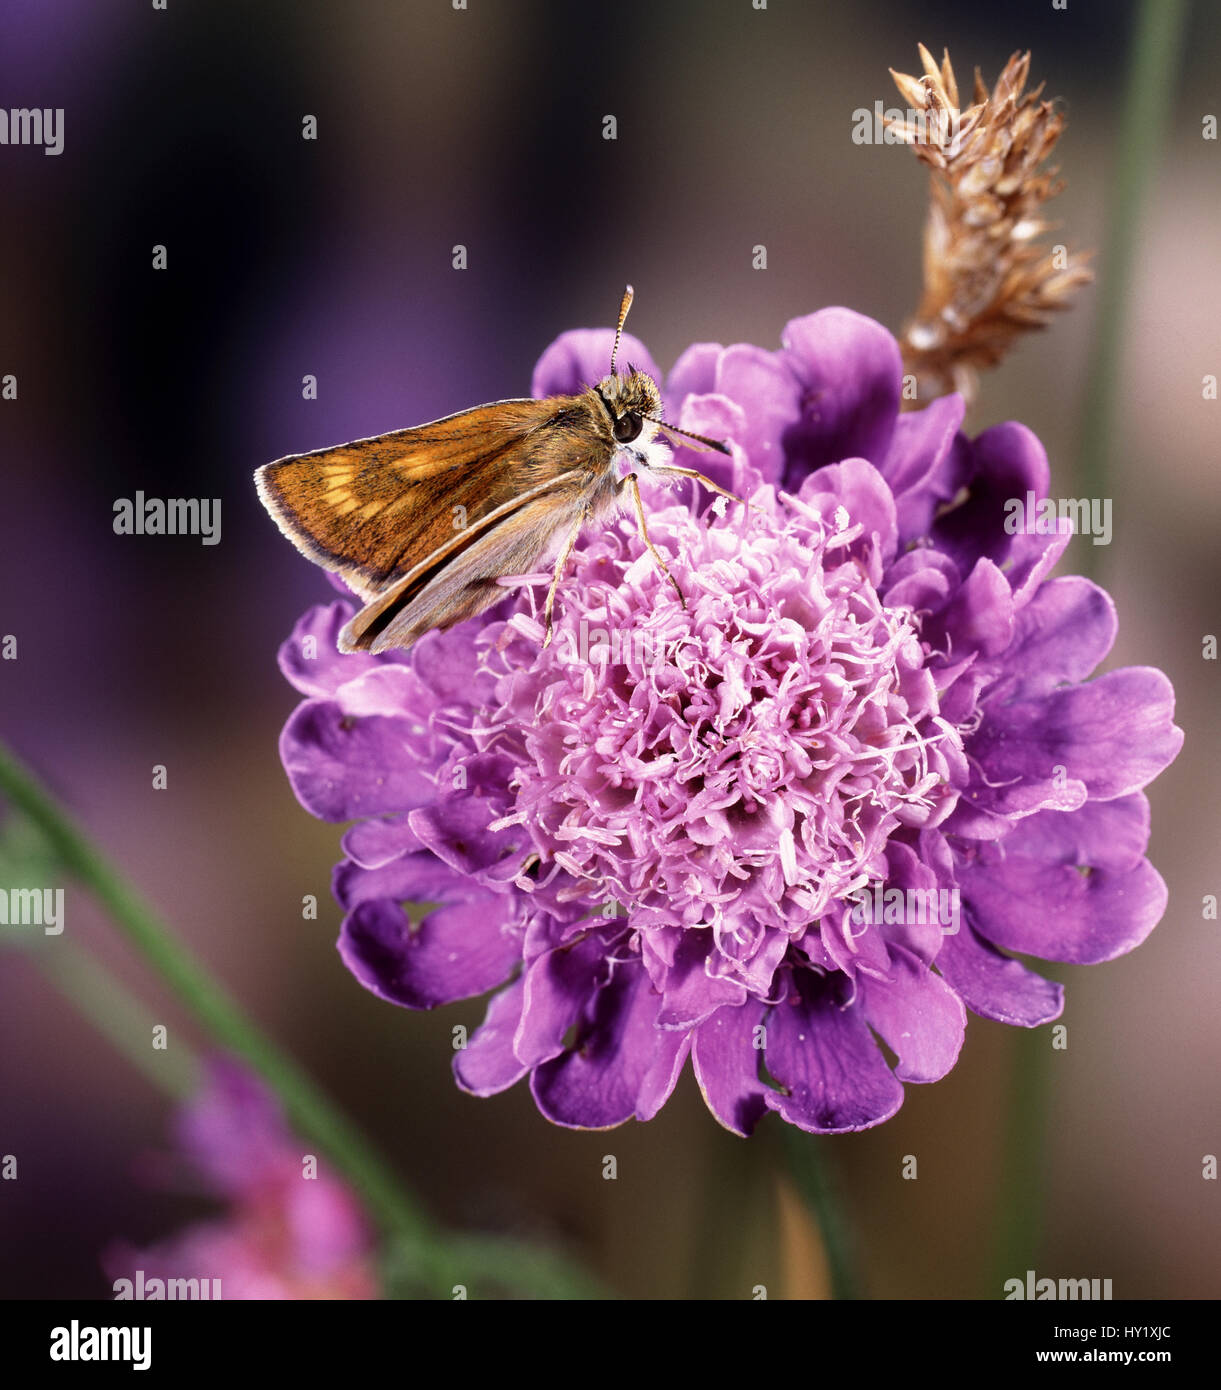 Lulworth Skipper butterfly (Thymelicus acteon) female on field scabious. England. - Stock Image